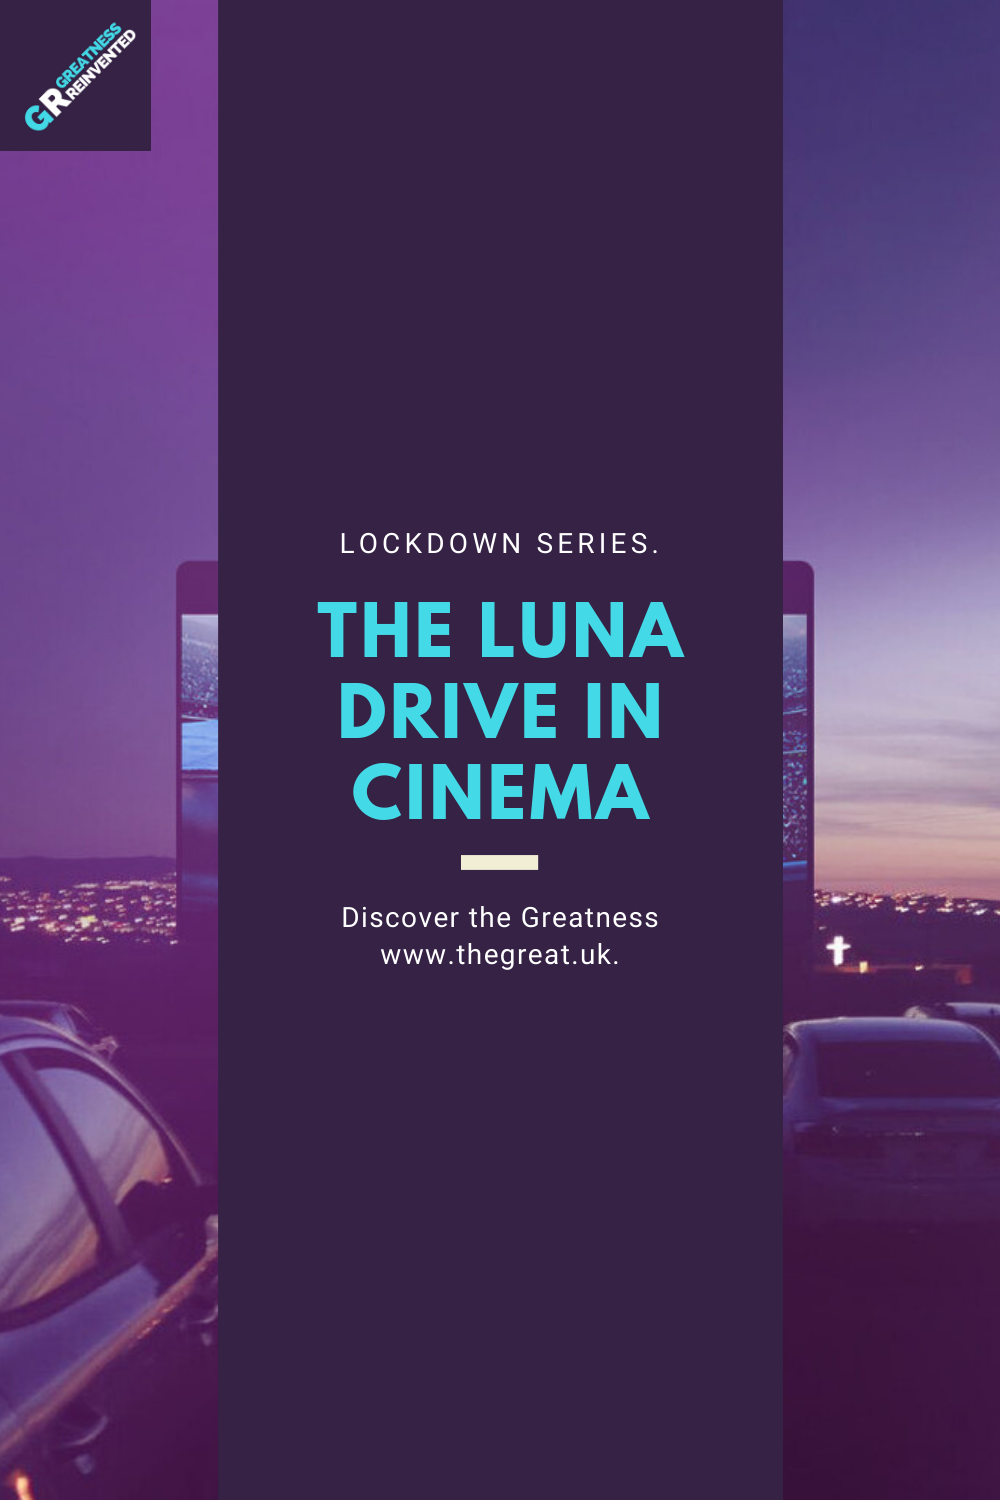 luna drive in cinema pin